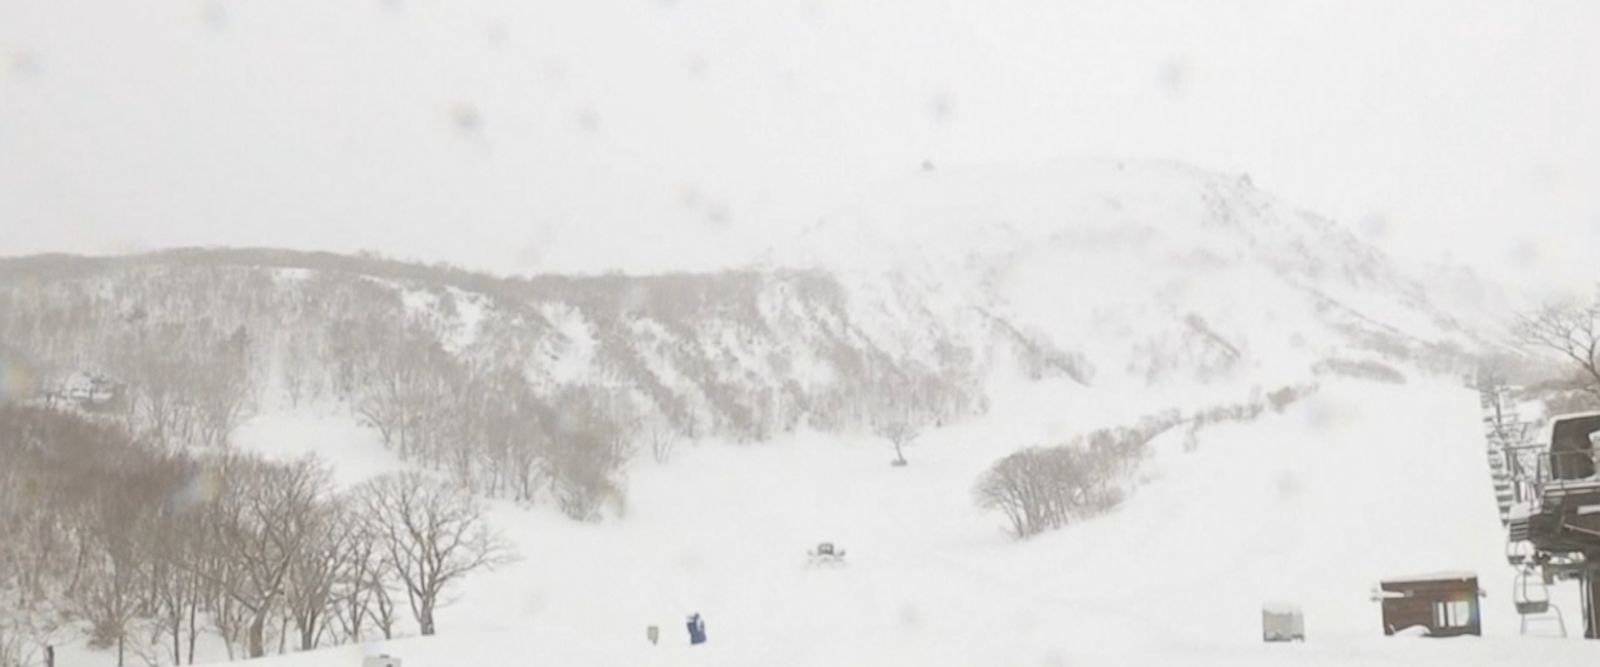 VIDEO: An avalanche at a ski resort in Japan hit several high school students on Monday morning, leaving several injured or feared dead, according to ABC News partner NHK.